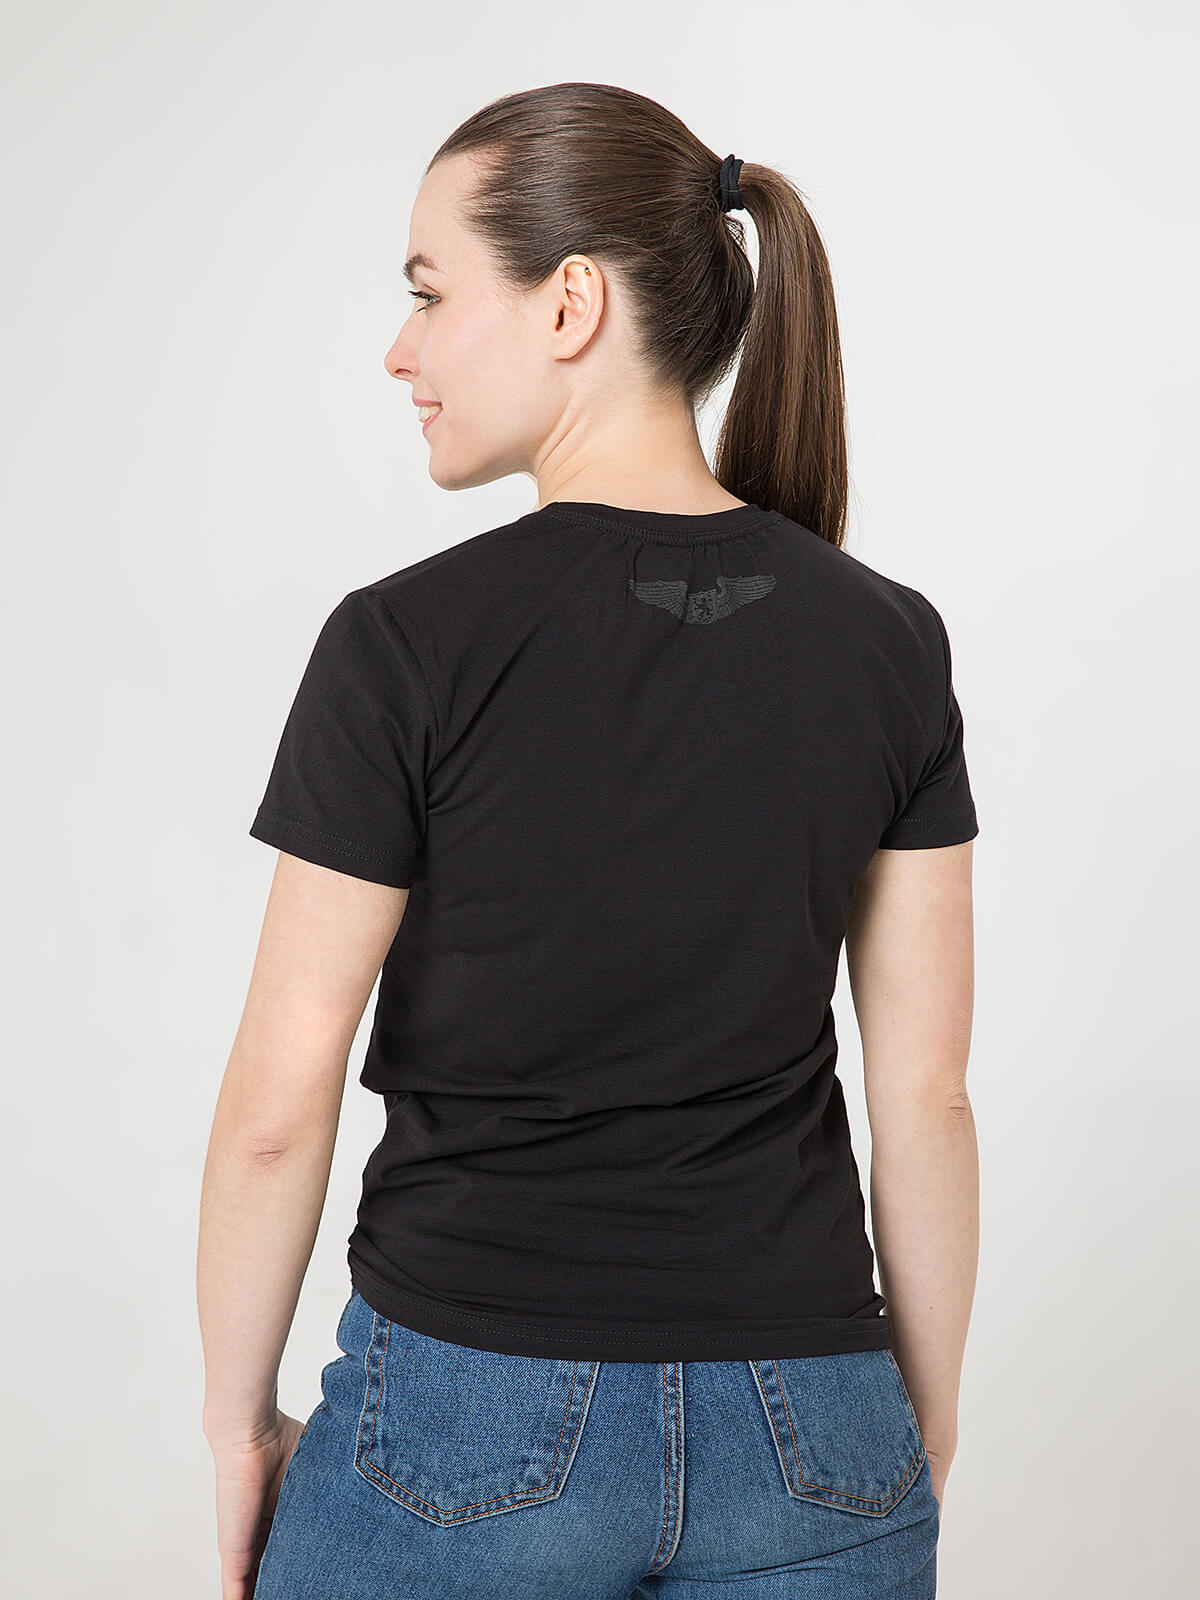 Women's T-Shirt Roundel. Color black.  Don't worry about the universal size.